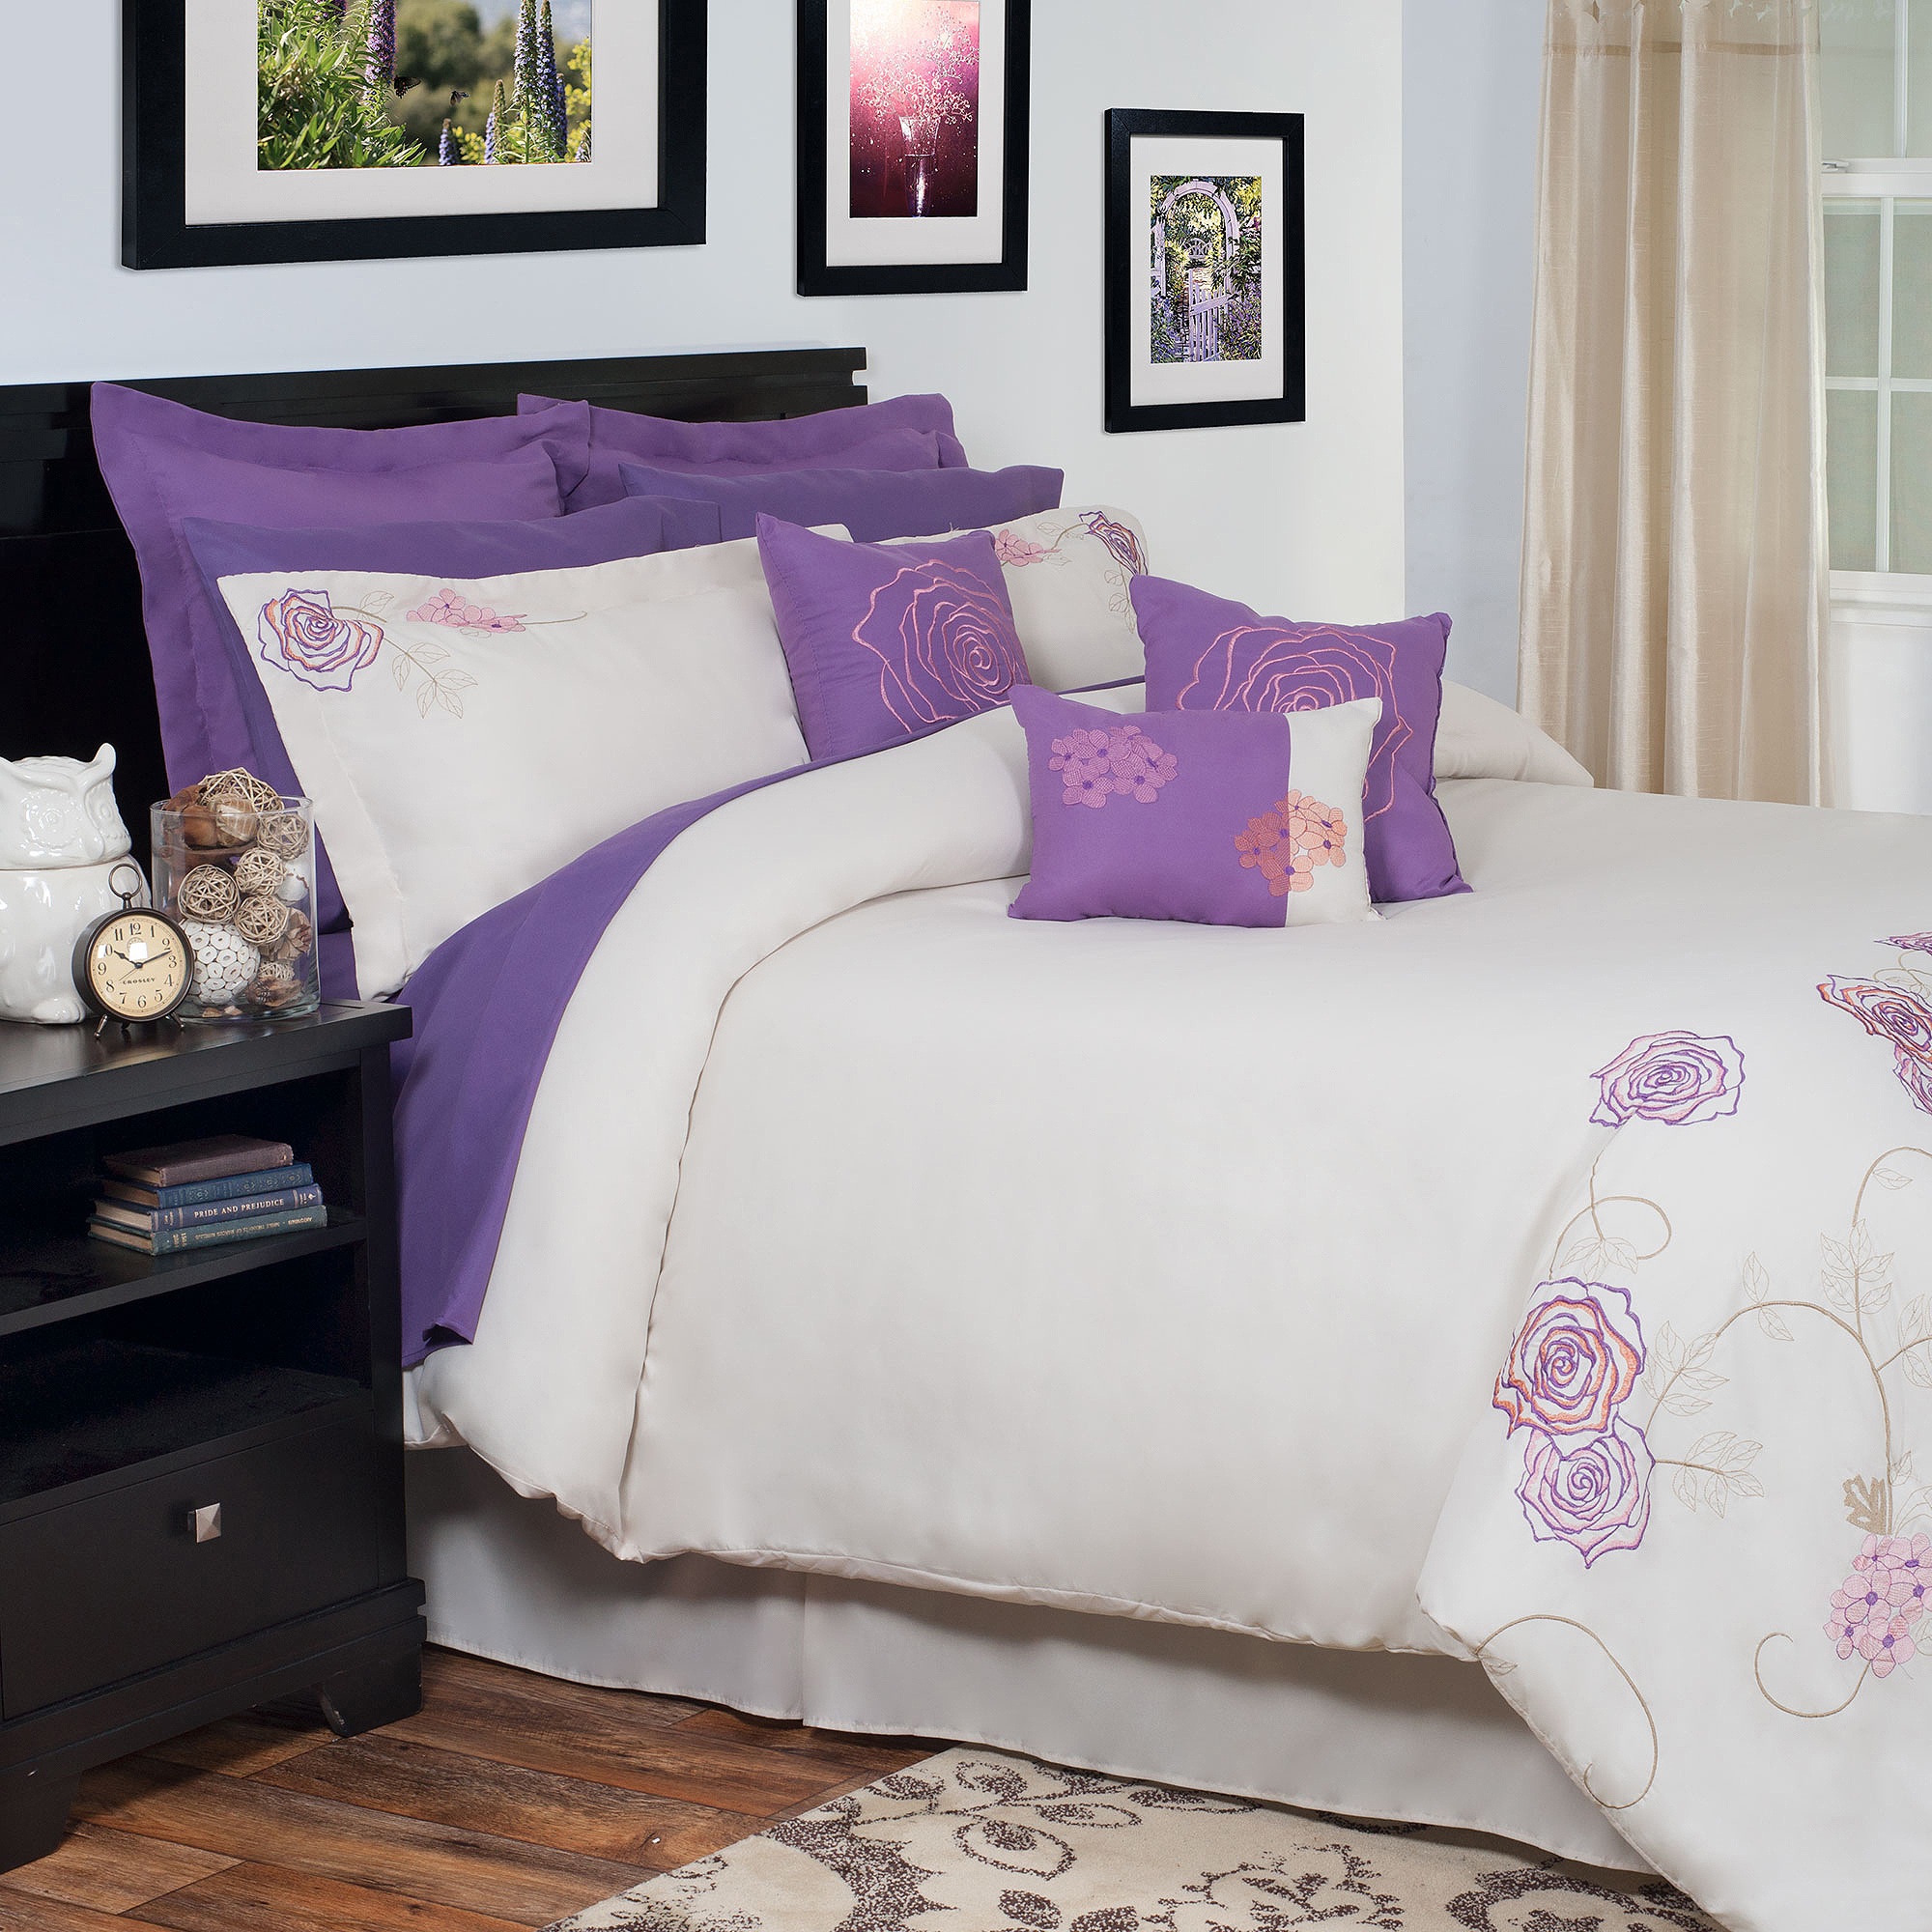 Somerset Home Mia Oversized Embroidered Bedding Comforter Set